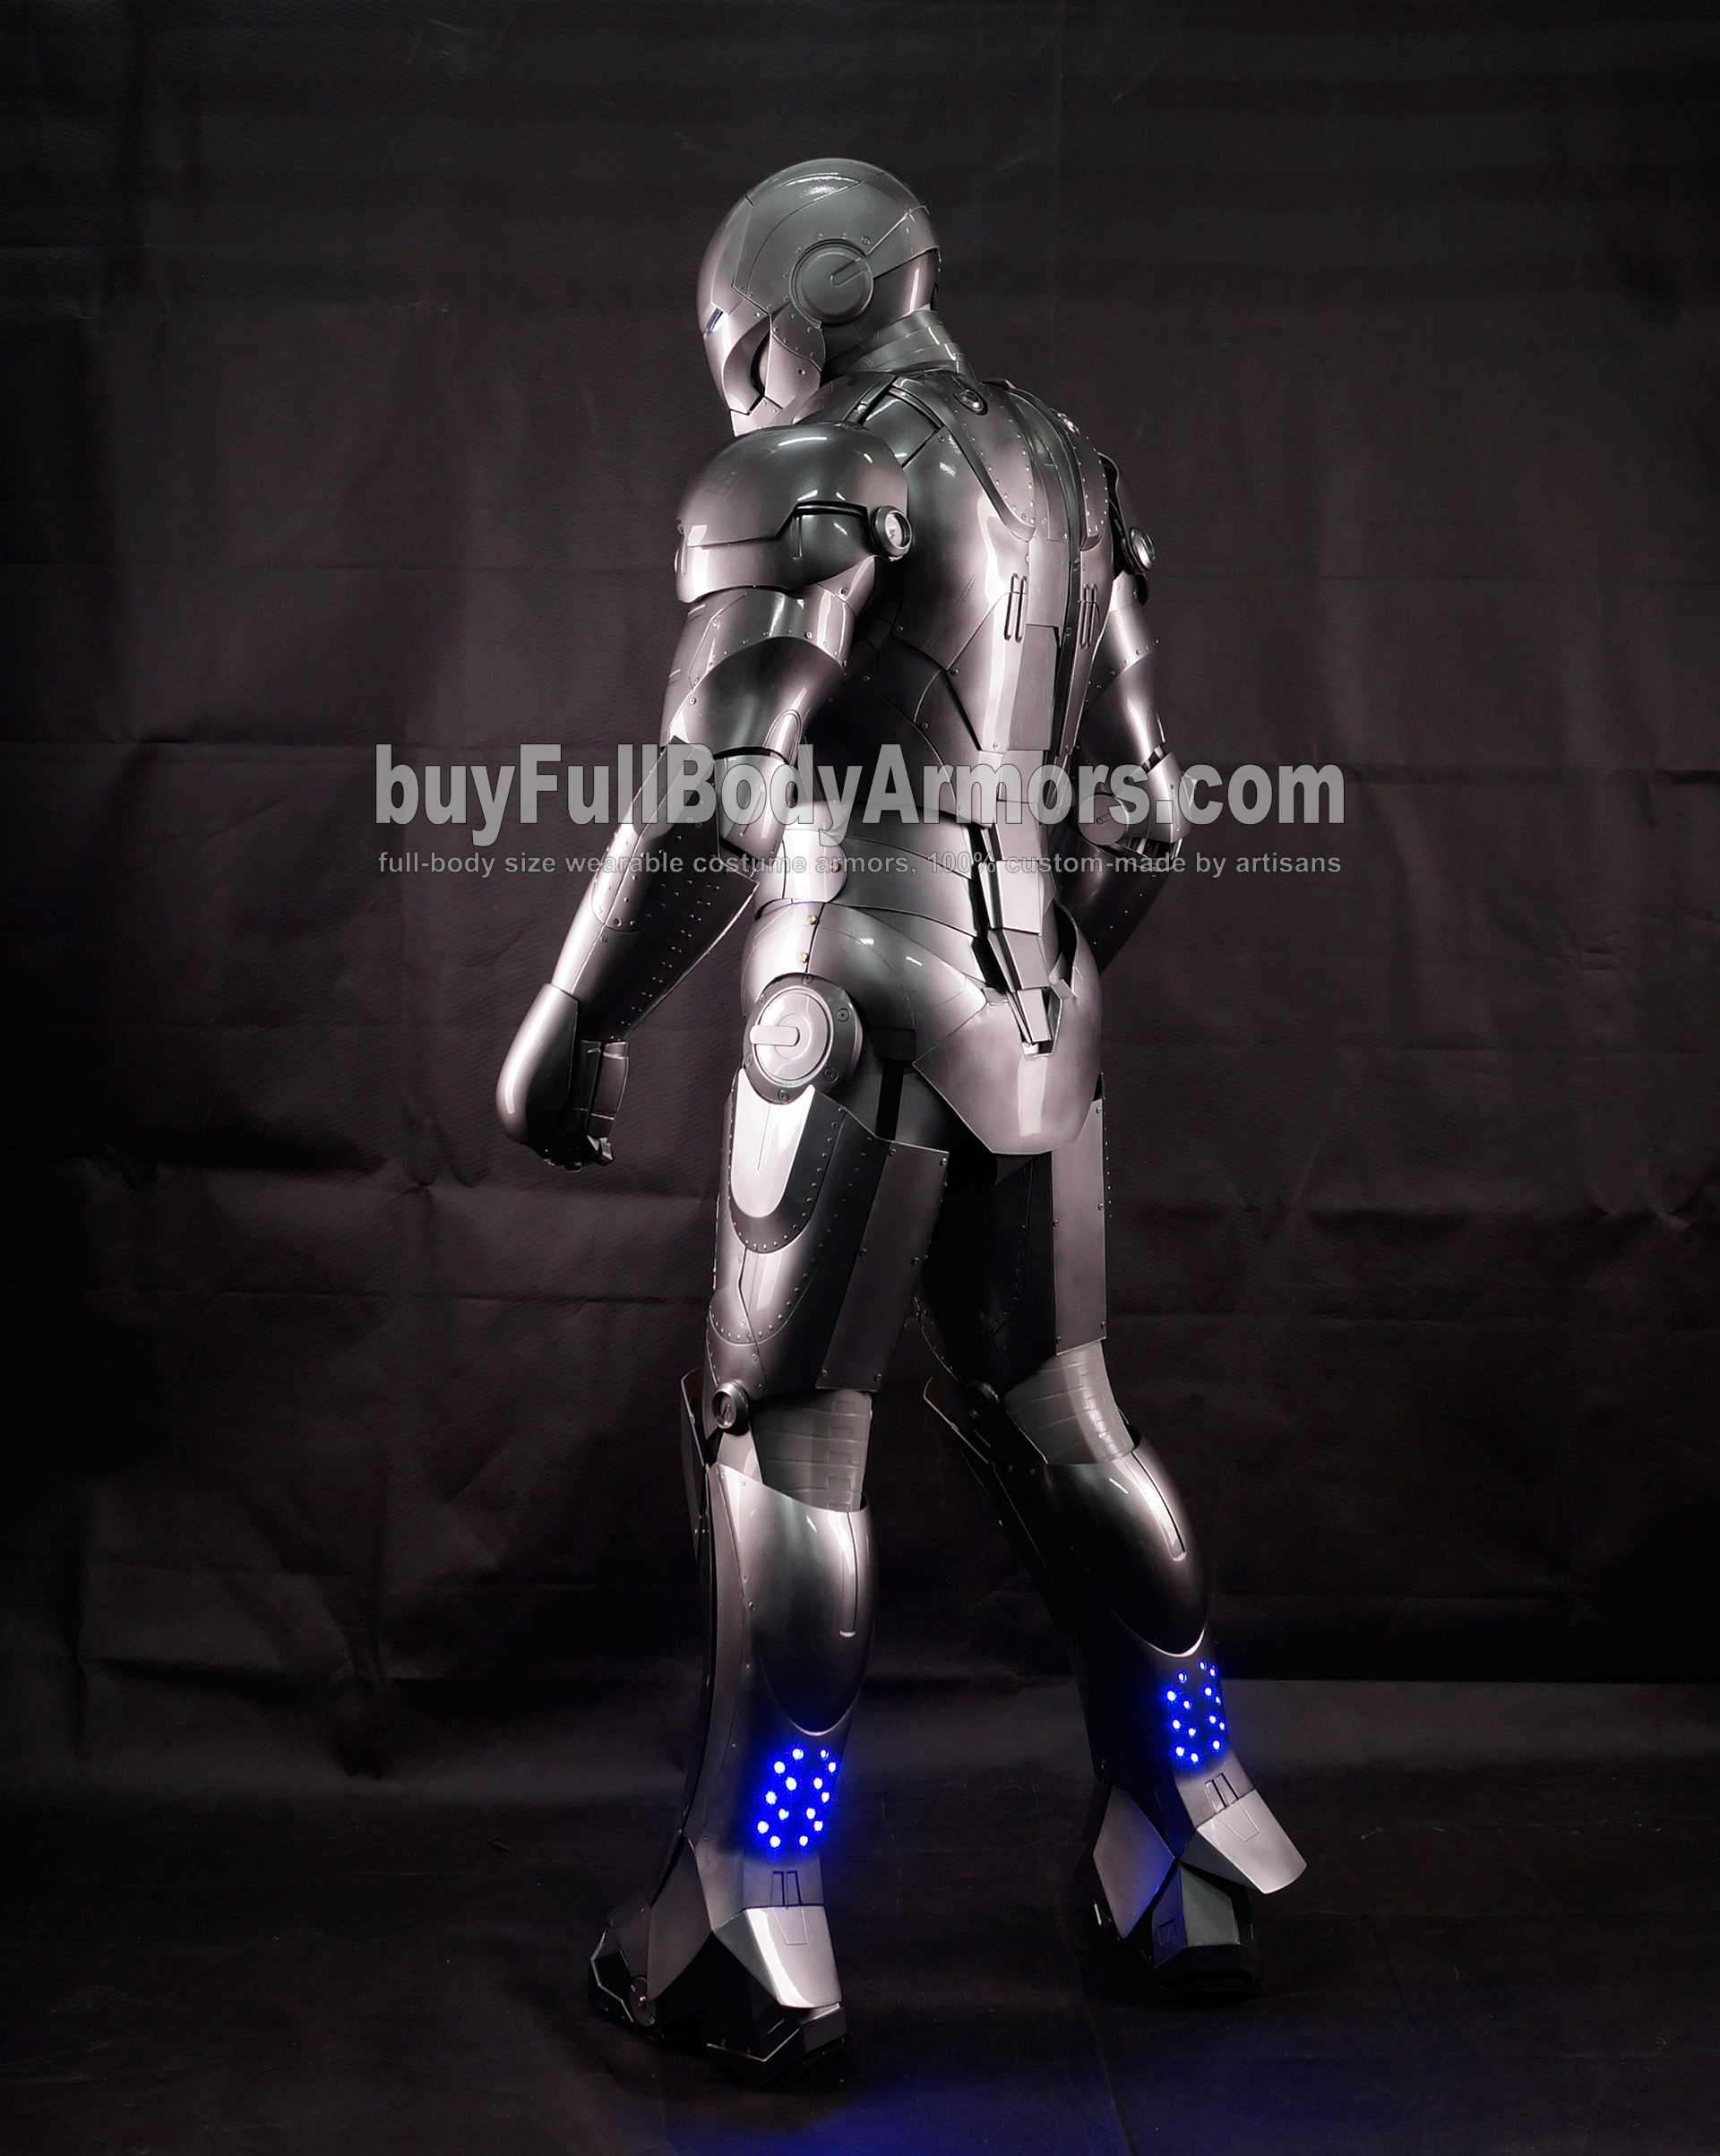 High Definition Photos of the Wearable Iron Man Mark 2 II Armor Costume Suit 3